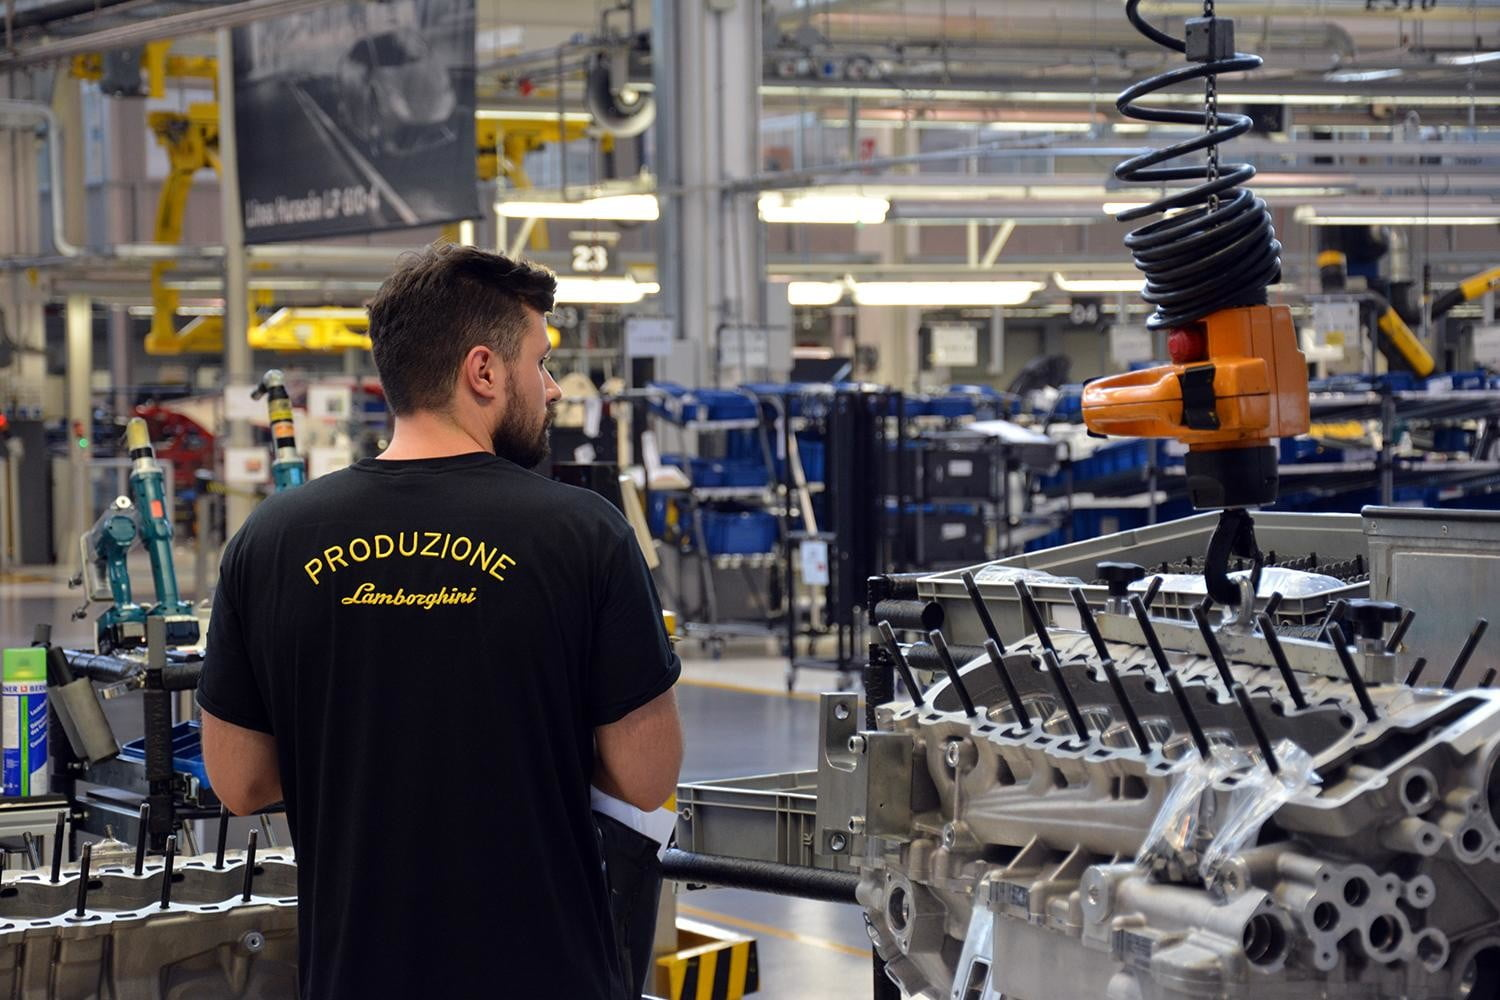 "Employees wear a black Lamborghini uniform that clearly indicates whether they're assembly line workers, part of the factory's logistics team, assigned to the prototype-building division and so forth. ""Produzione"" (Italian for ""production"") means the man pictured here is an assembly line worker."